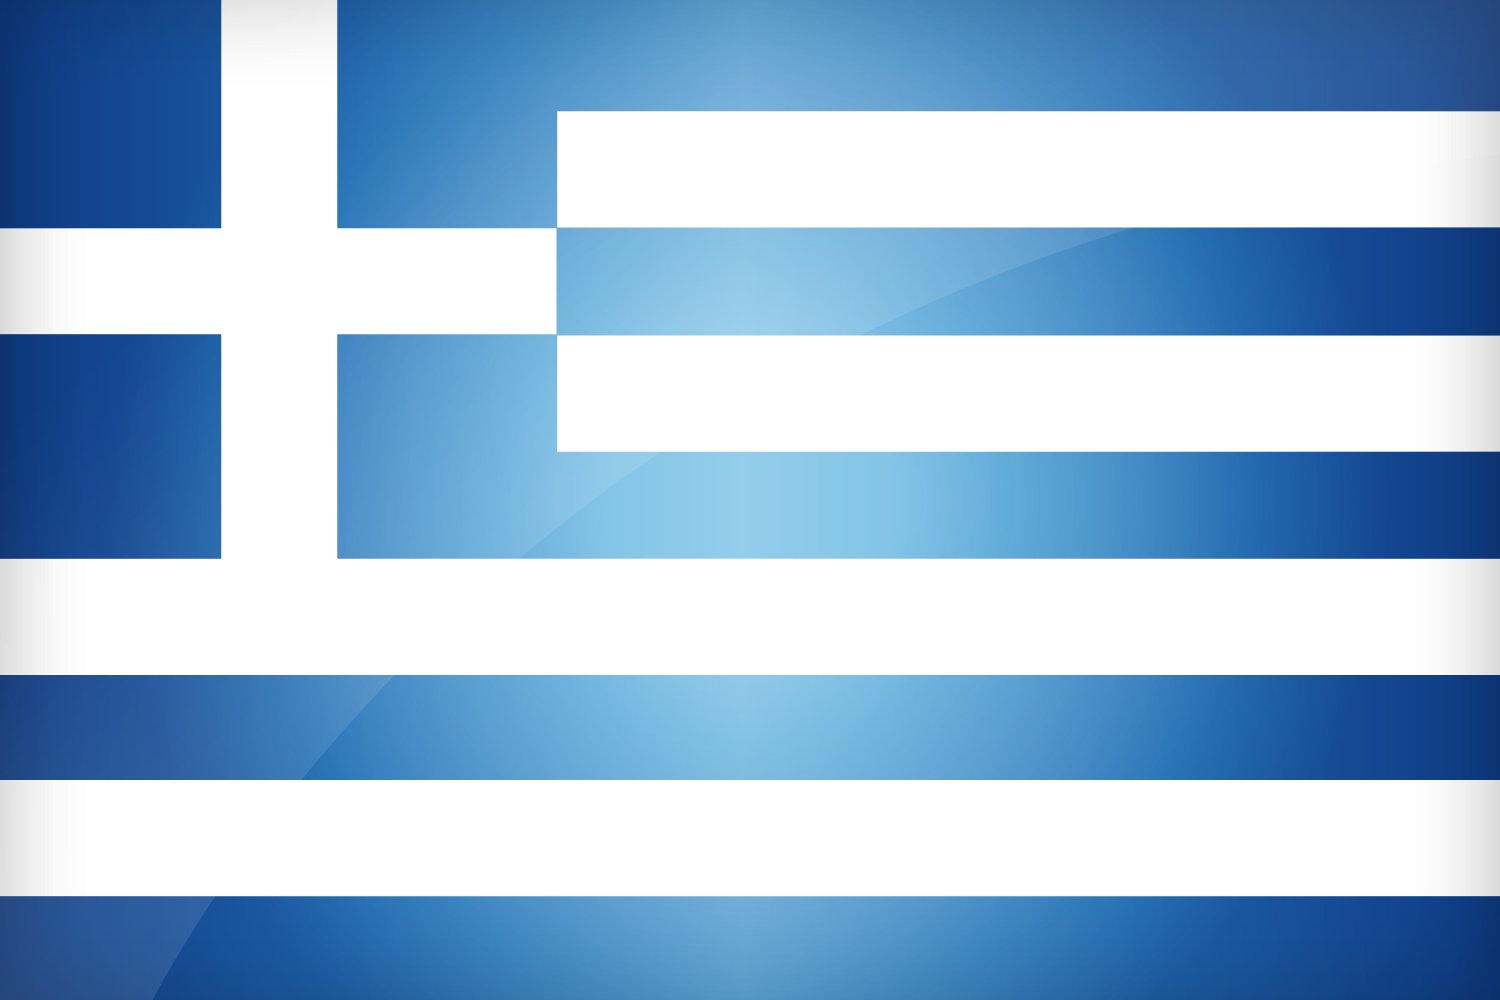 Flag Of Greece Backgrounds, Compatible - PC, Mobile, Gadgets| 1500x1000 px